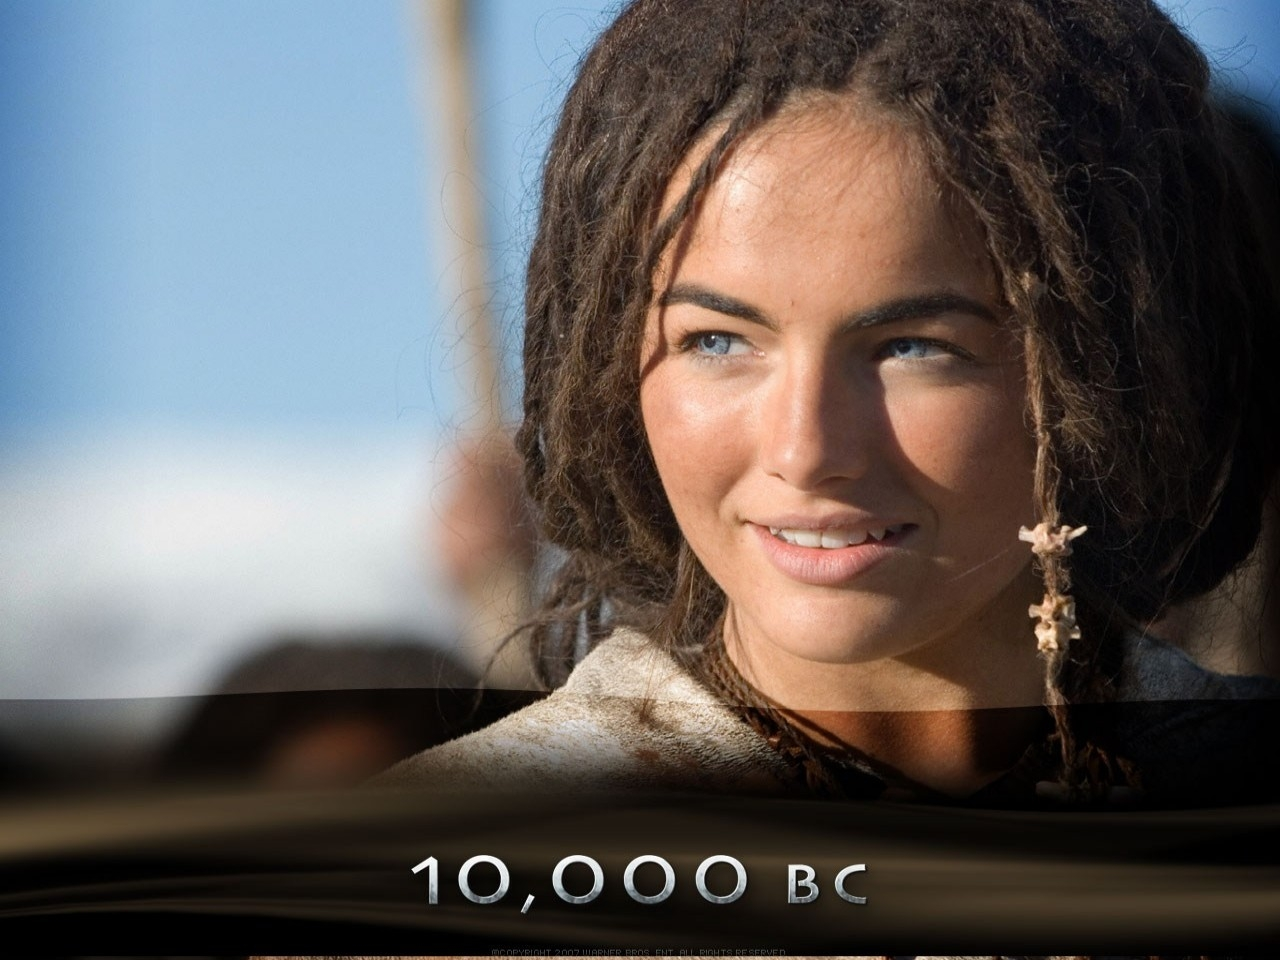 Wallpaper del film 10000 AC con Camilla Belle